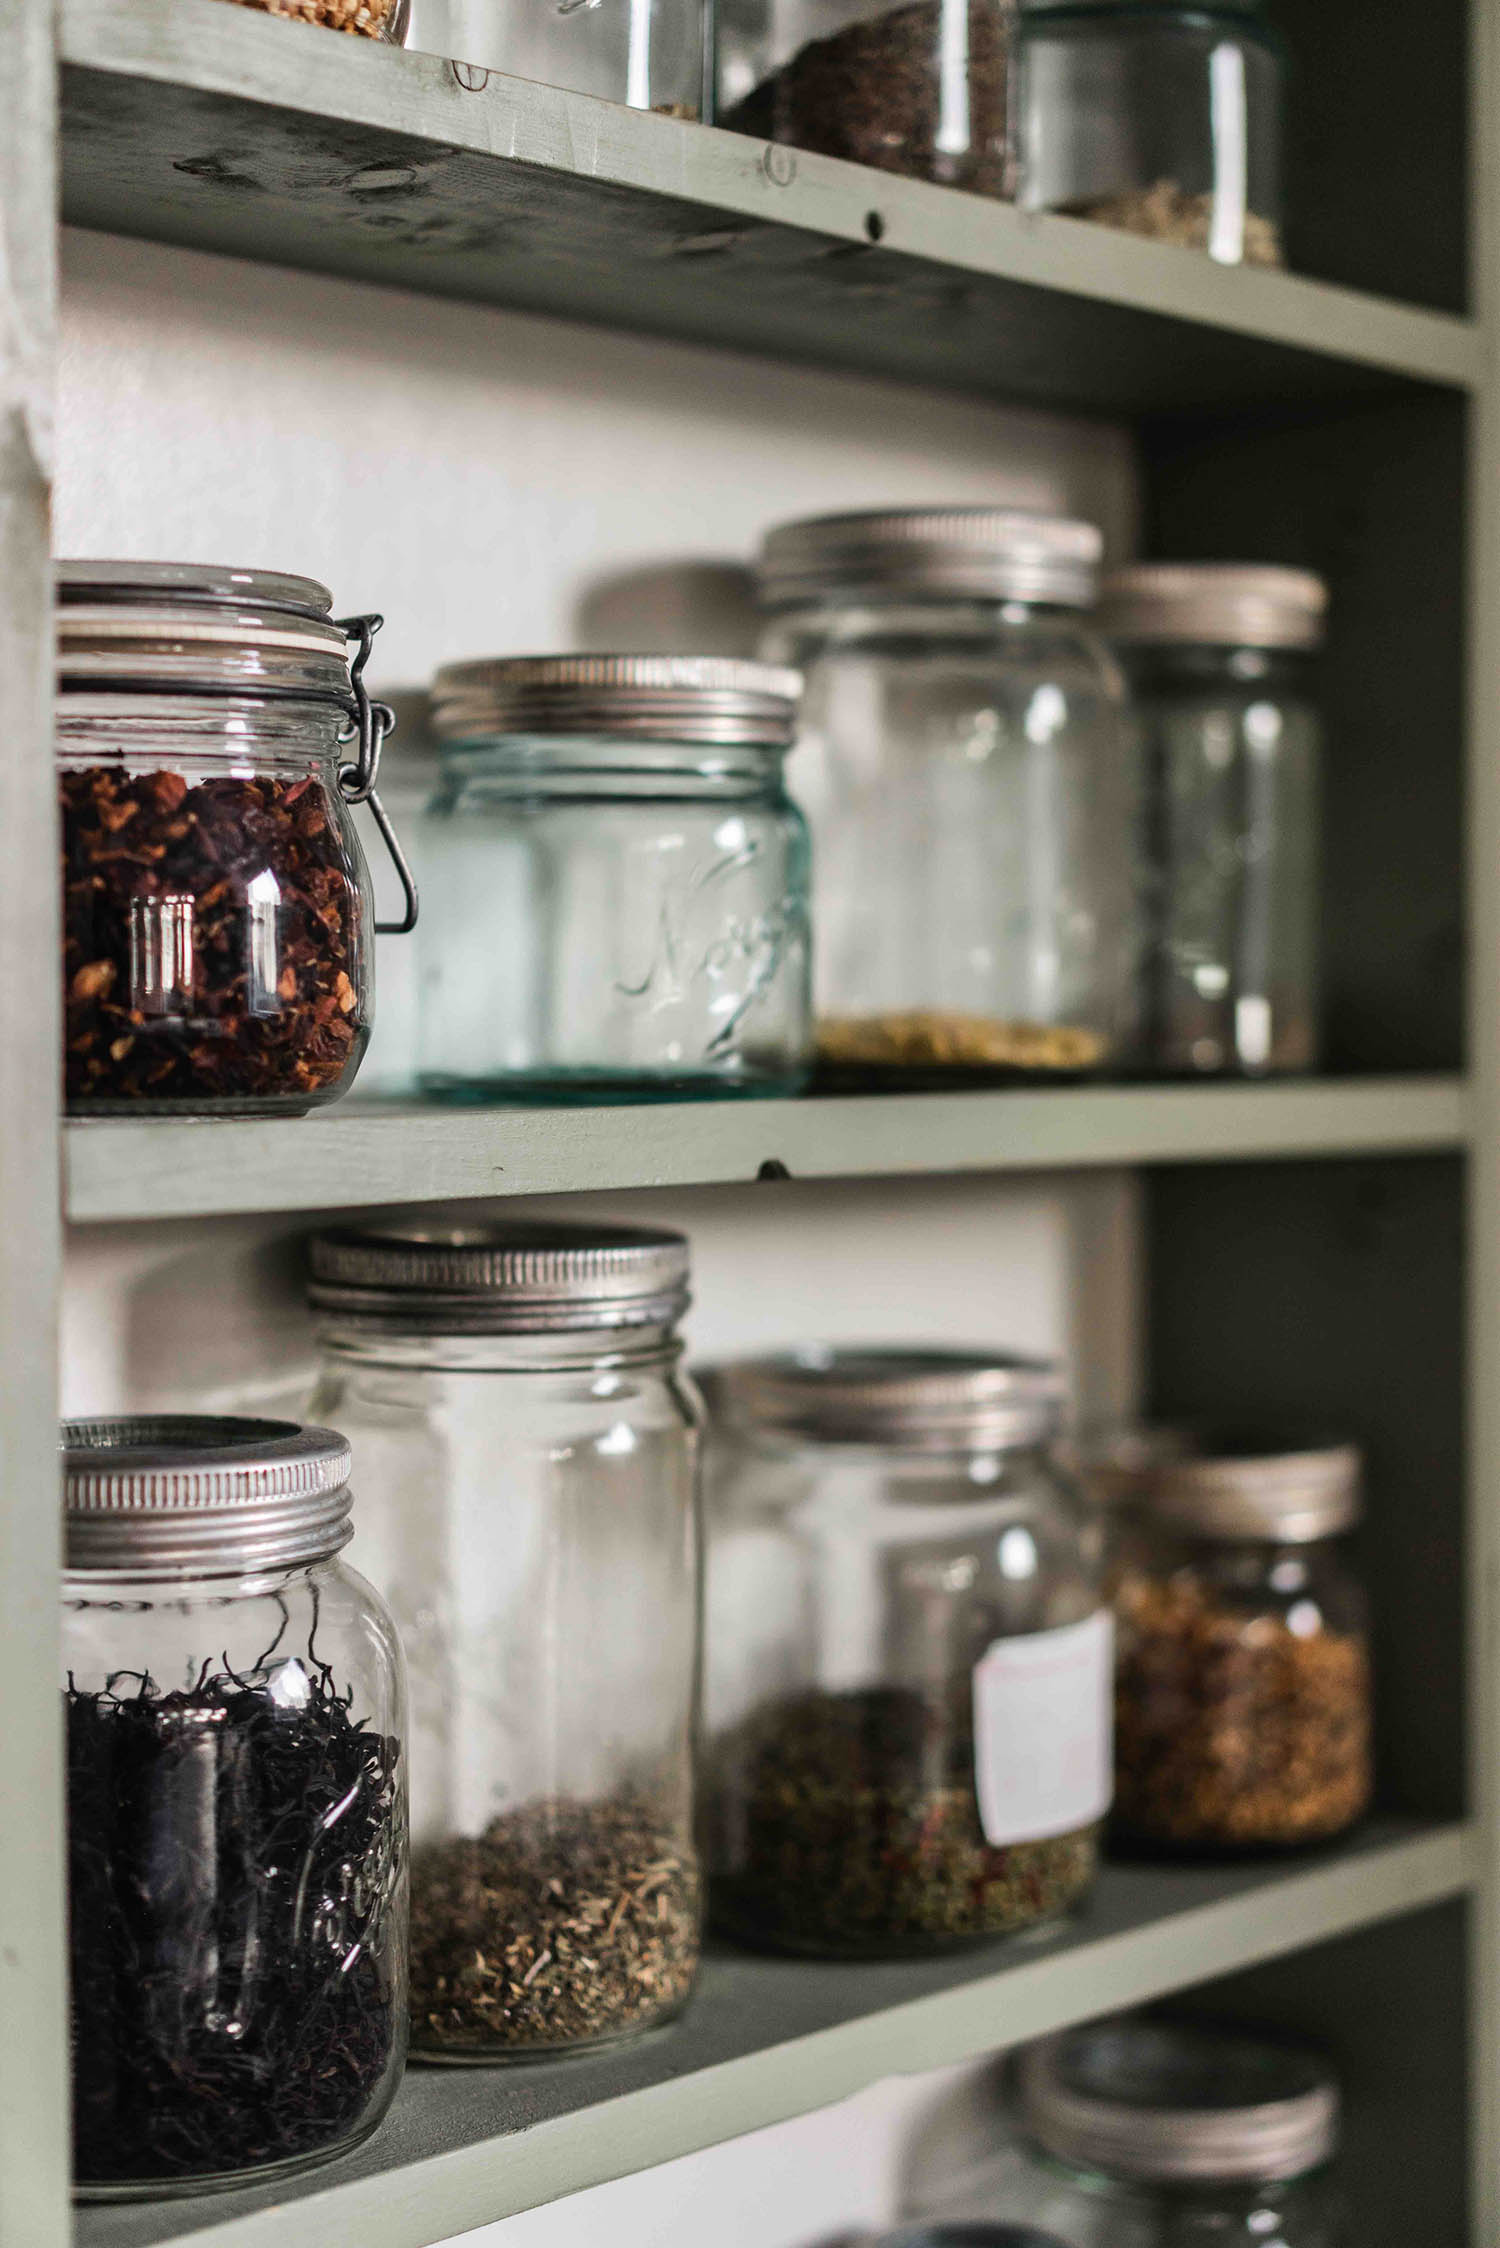 Home Herbal Apothecary: Buying Bulk Spices & Herbs Locally Vs. Online